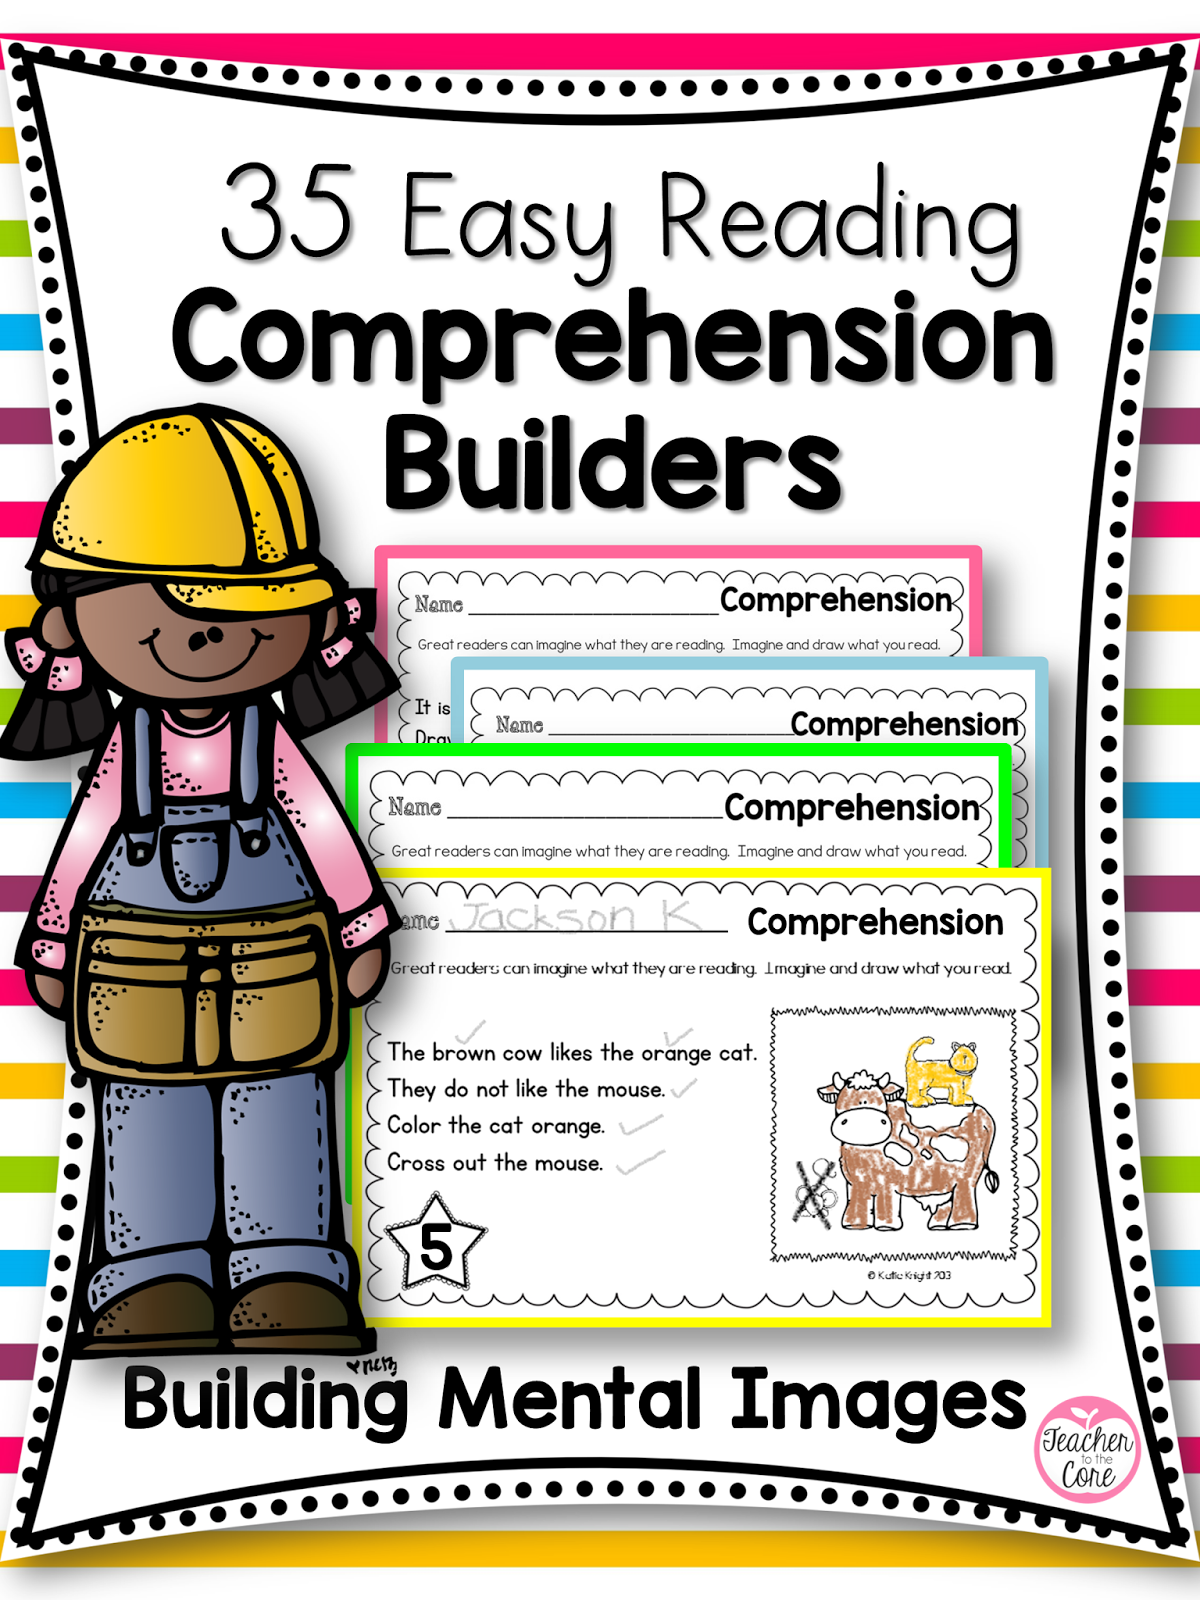 The 35 Comprehension Builders Start With Simple Sentence